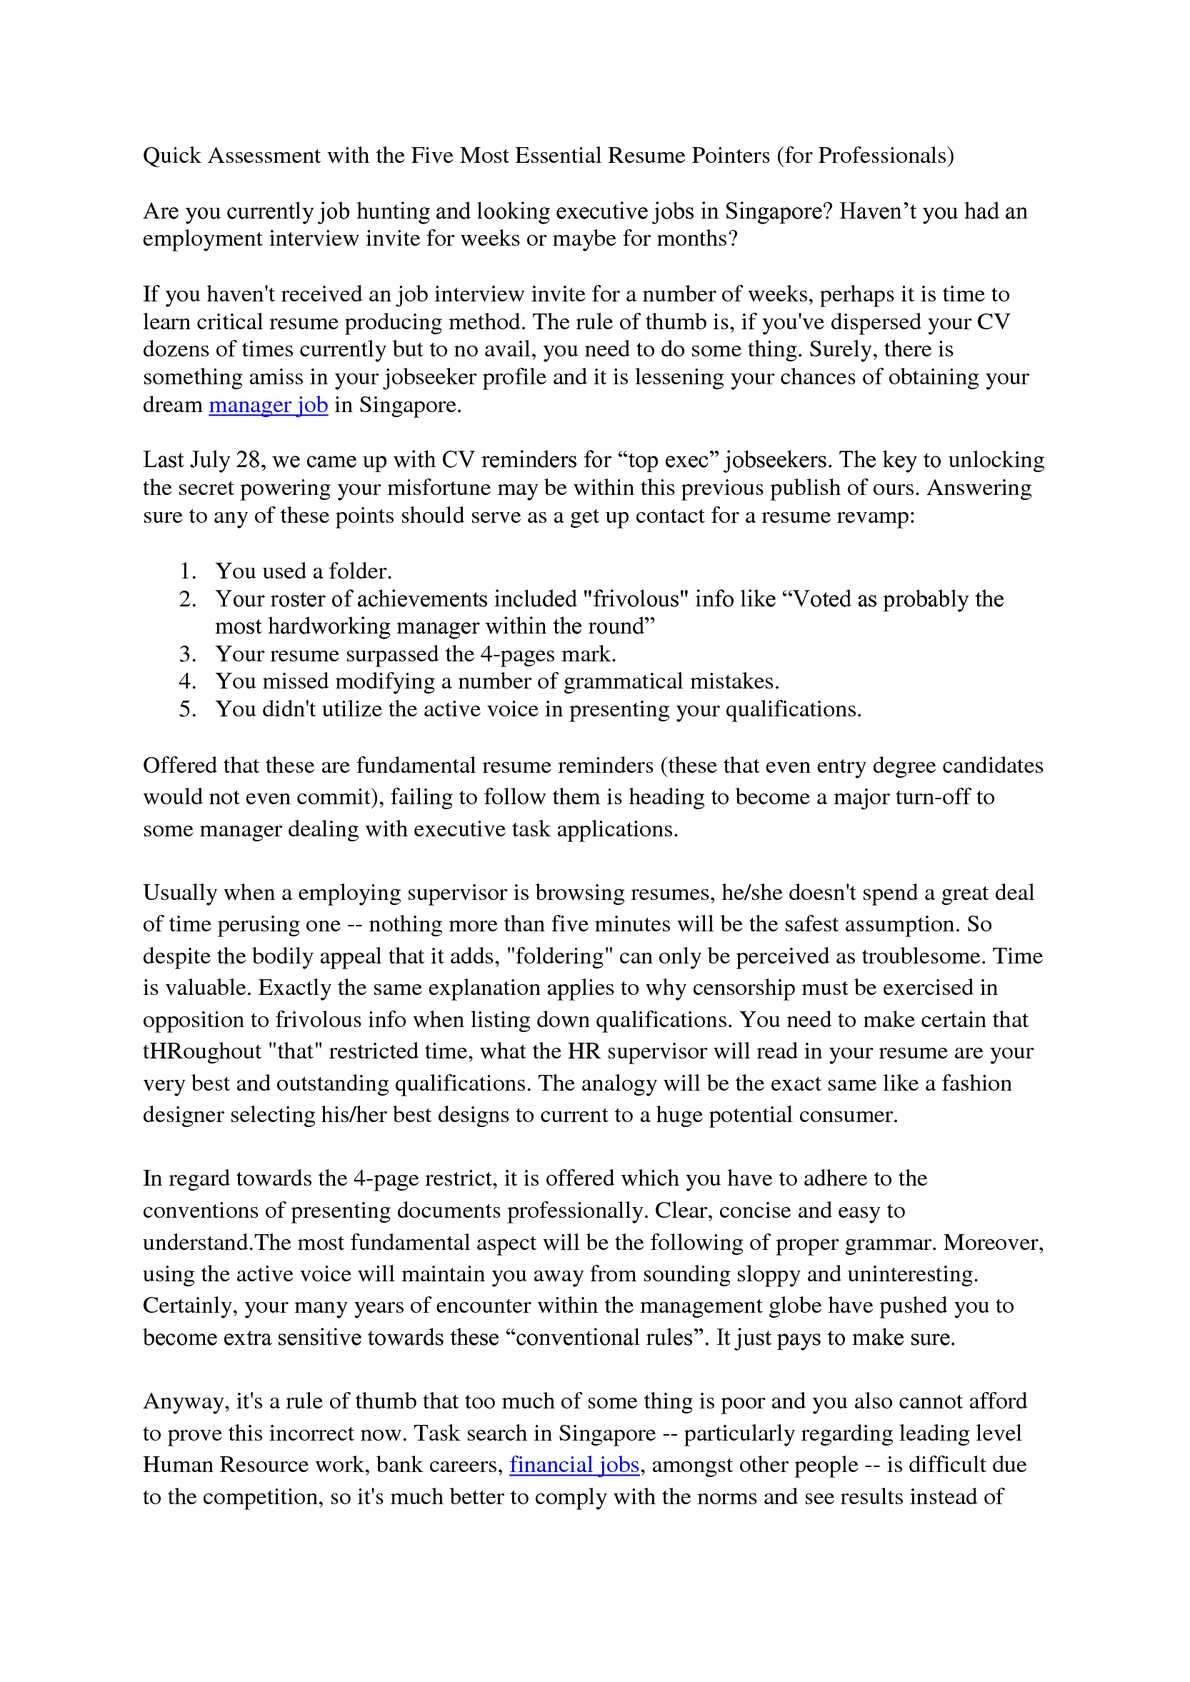 Calamo Quick Review Of The Five Most Basic Resume Reminders For